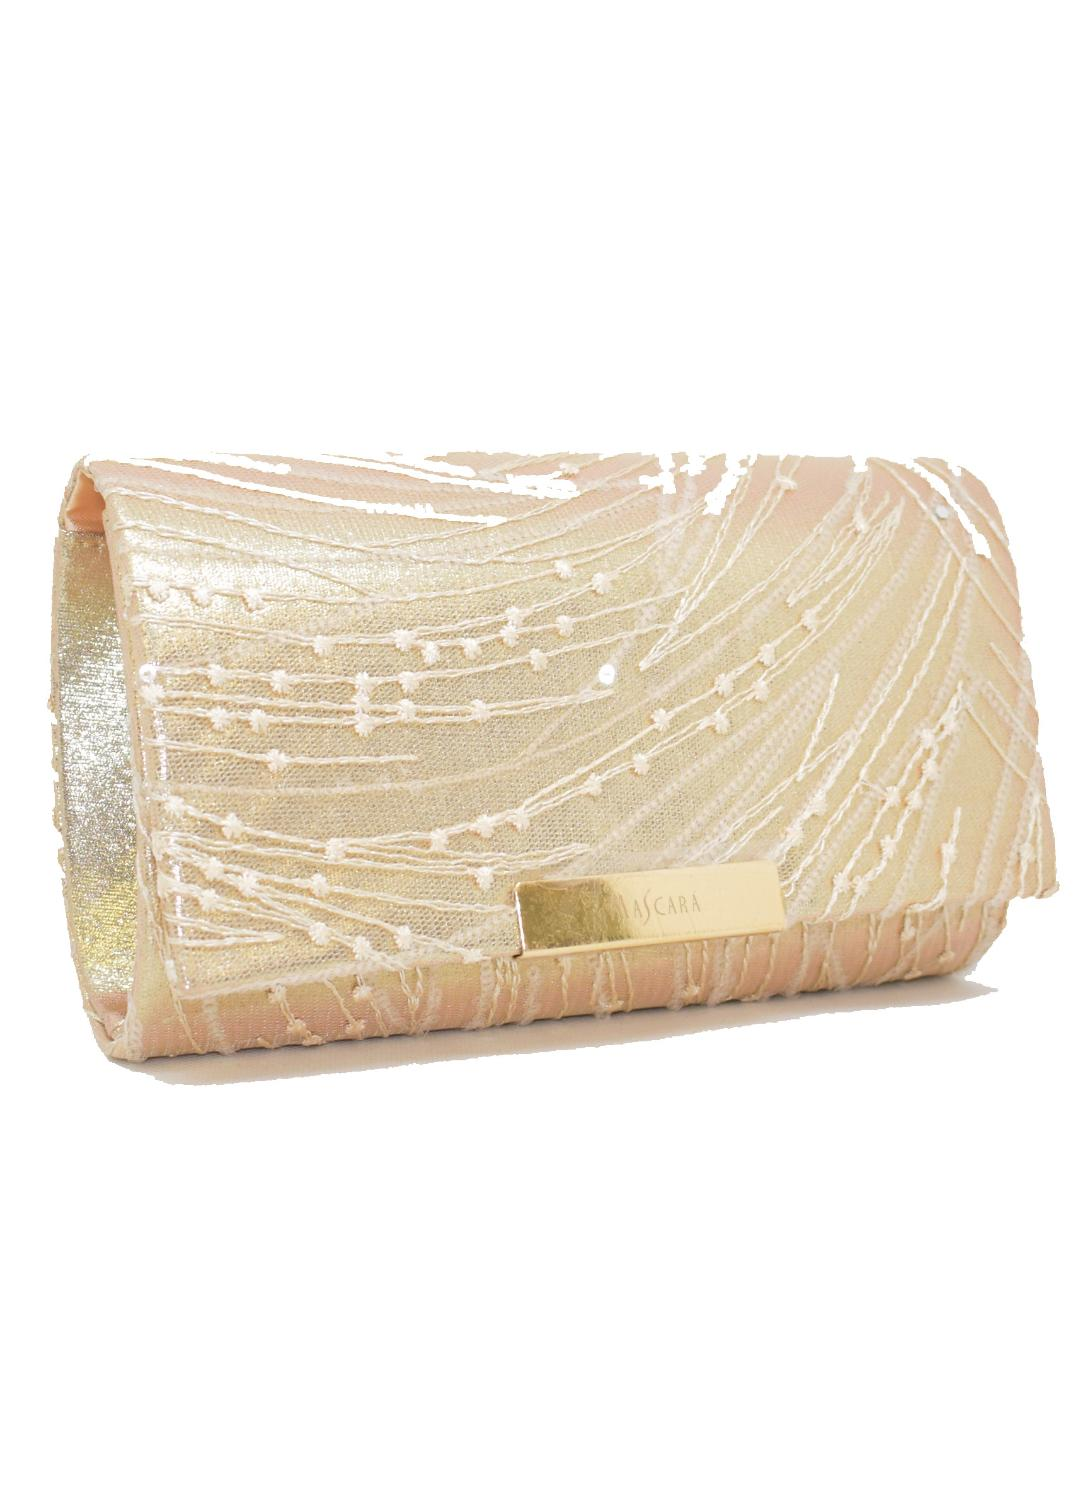 Mascara Pearl Strings Clutch Bag - Champagne 1